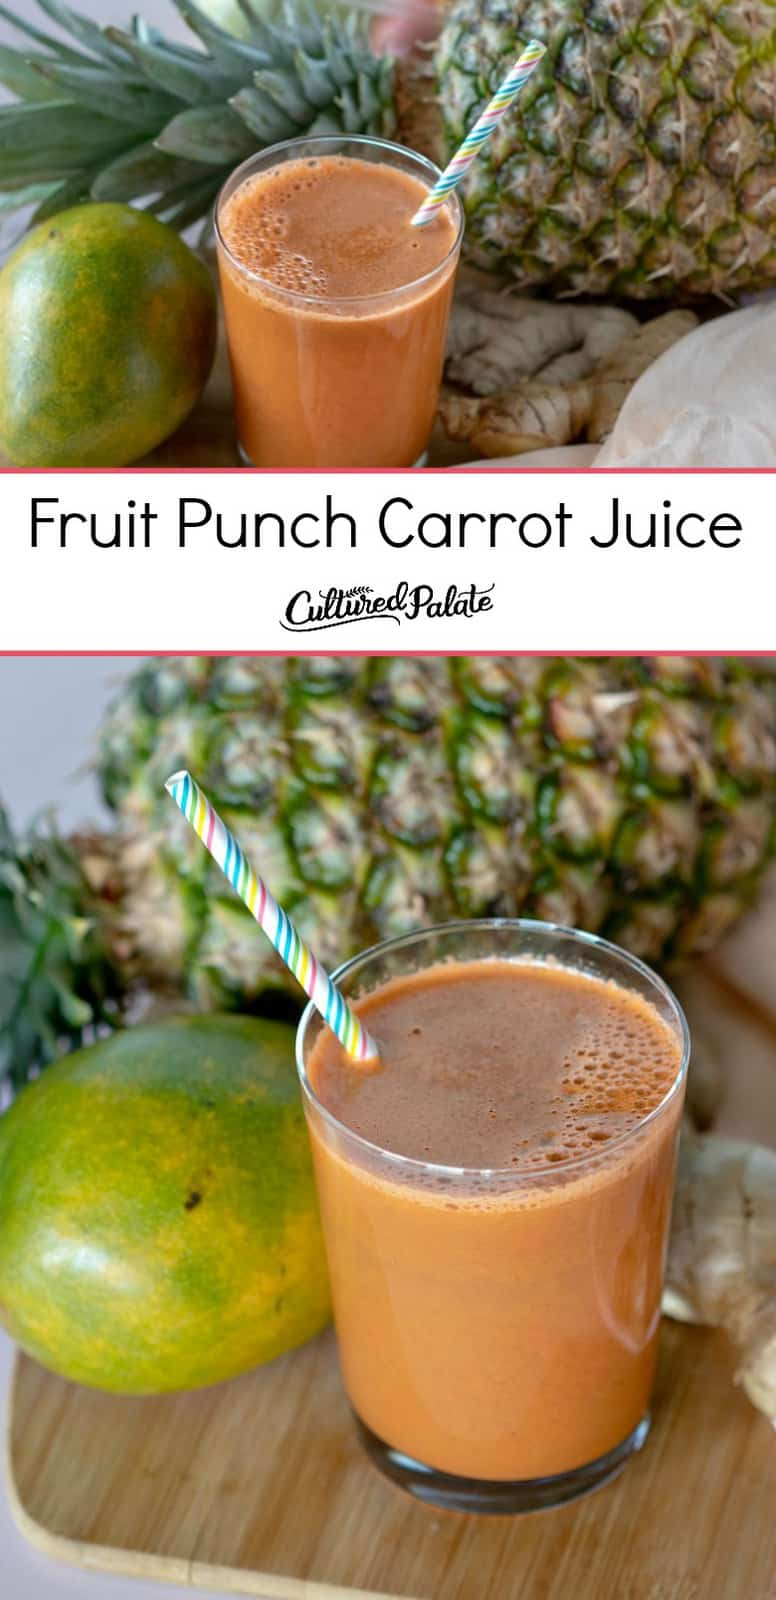 Fruit Punch Carrot Juice shown in two images both in glass with colorful straw and pineapple with text overlay.